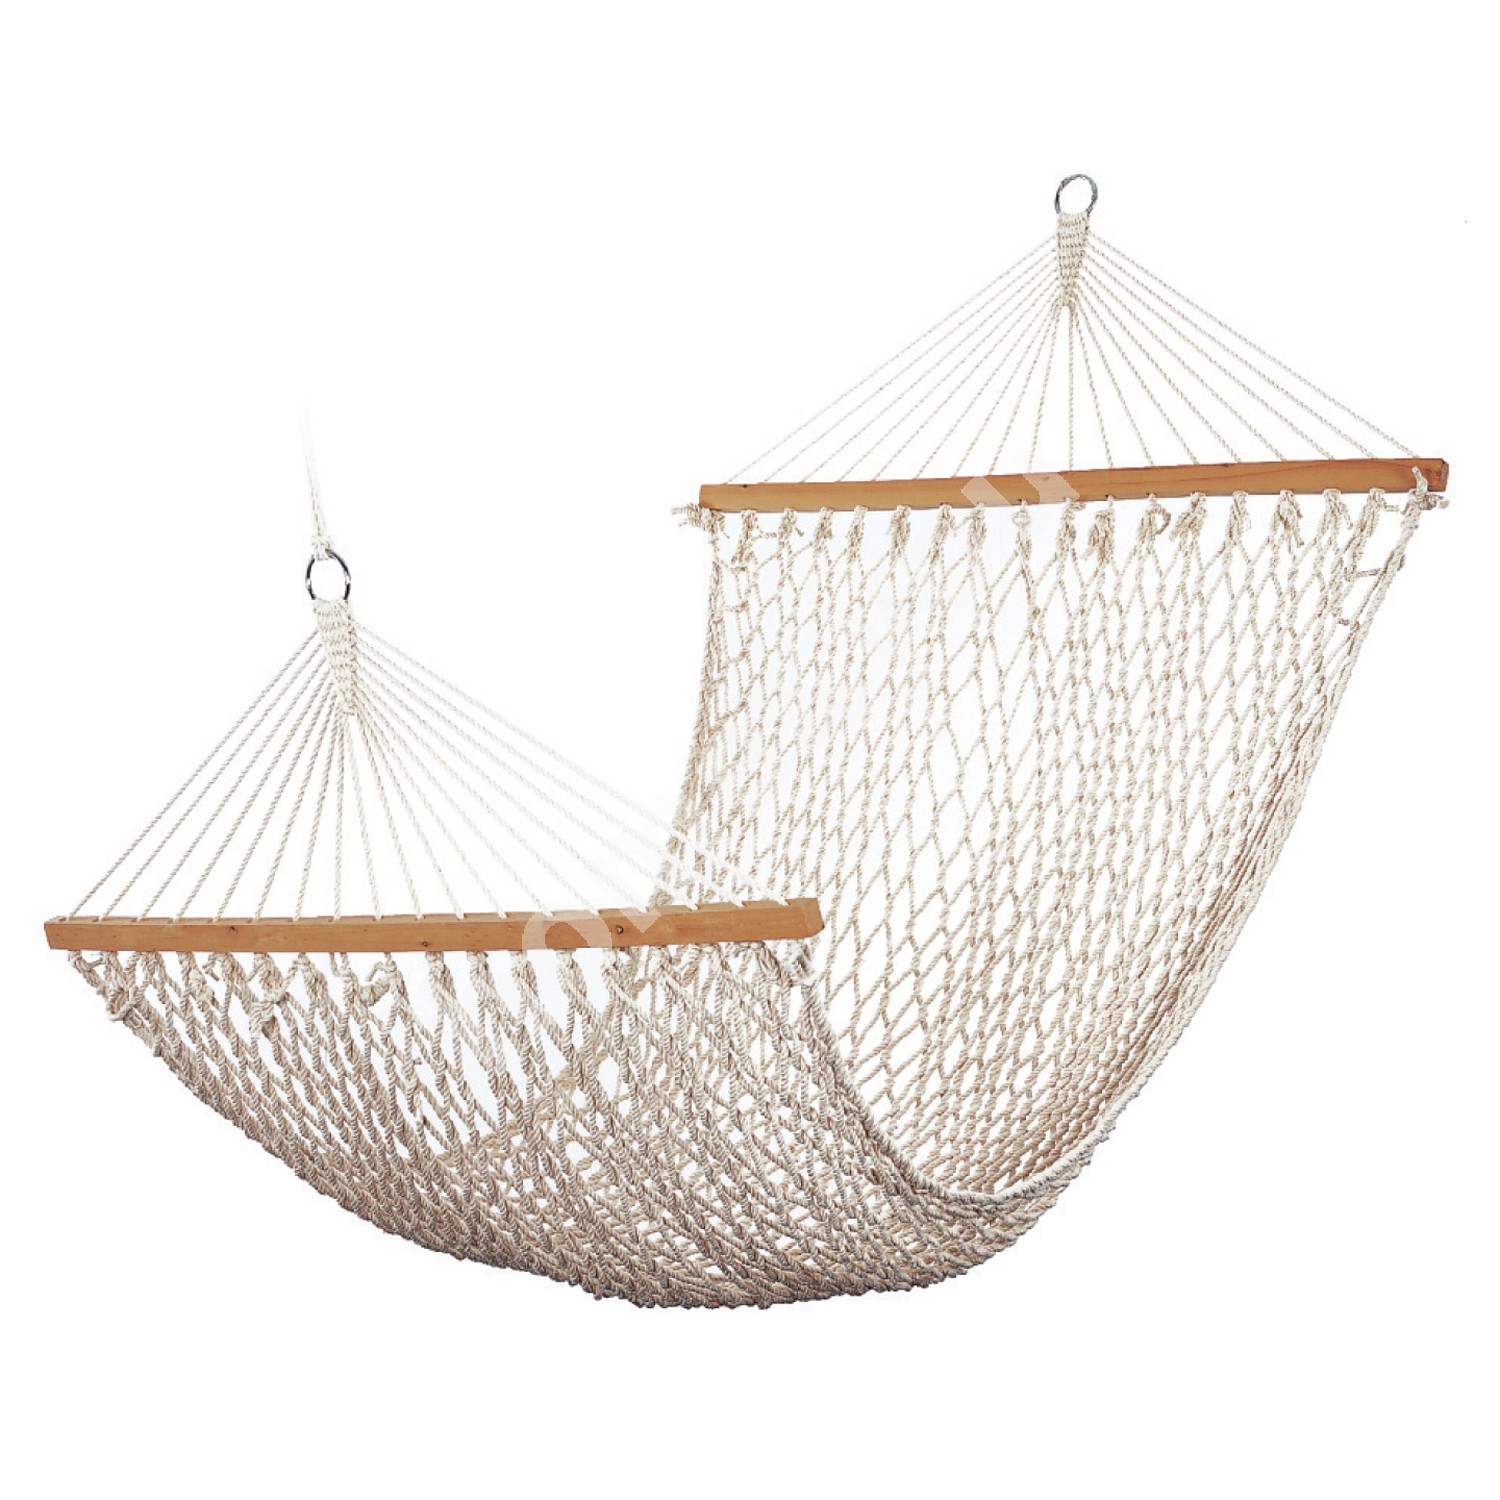 Hammock LAISY, 200x110cm, material: cotton rope, color: natural white